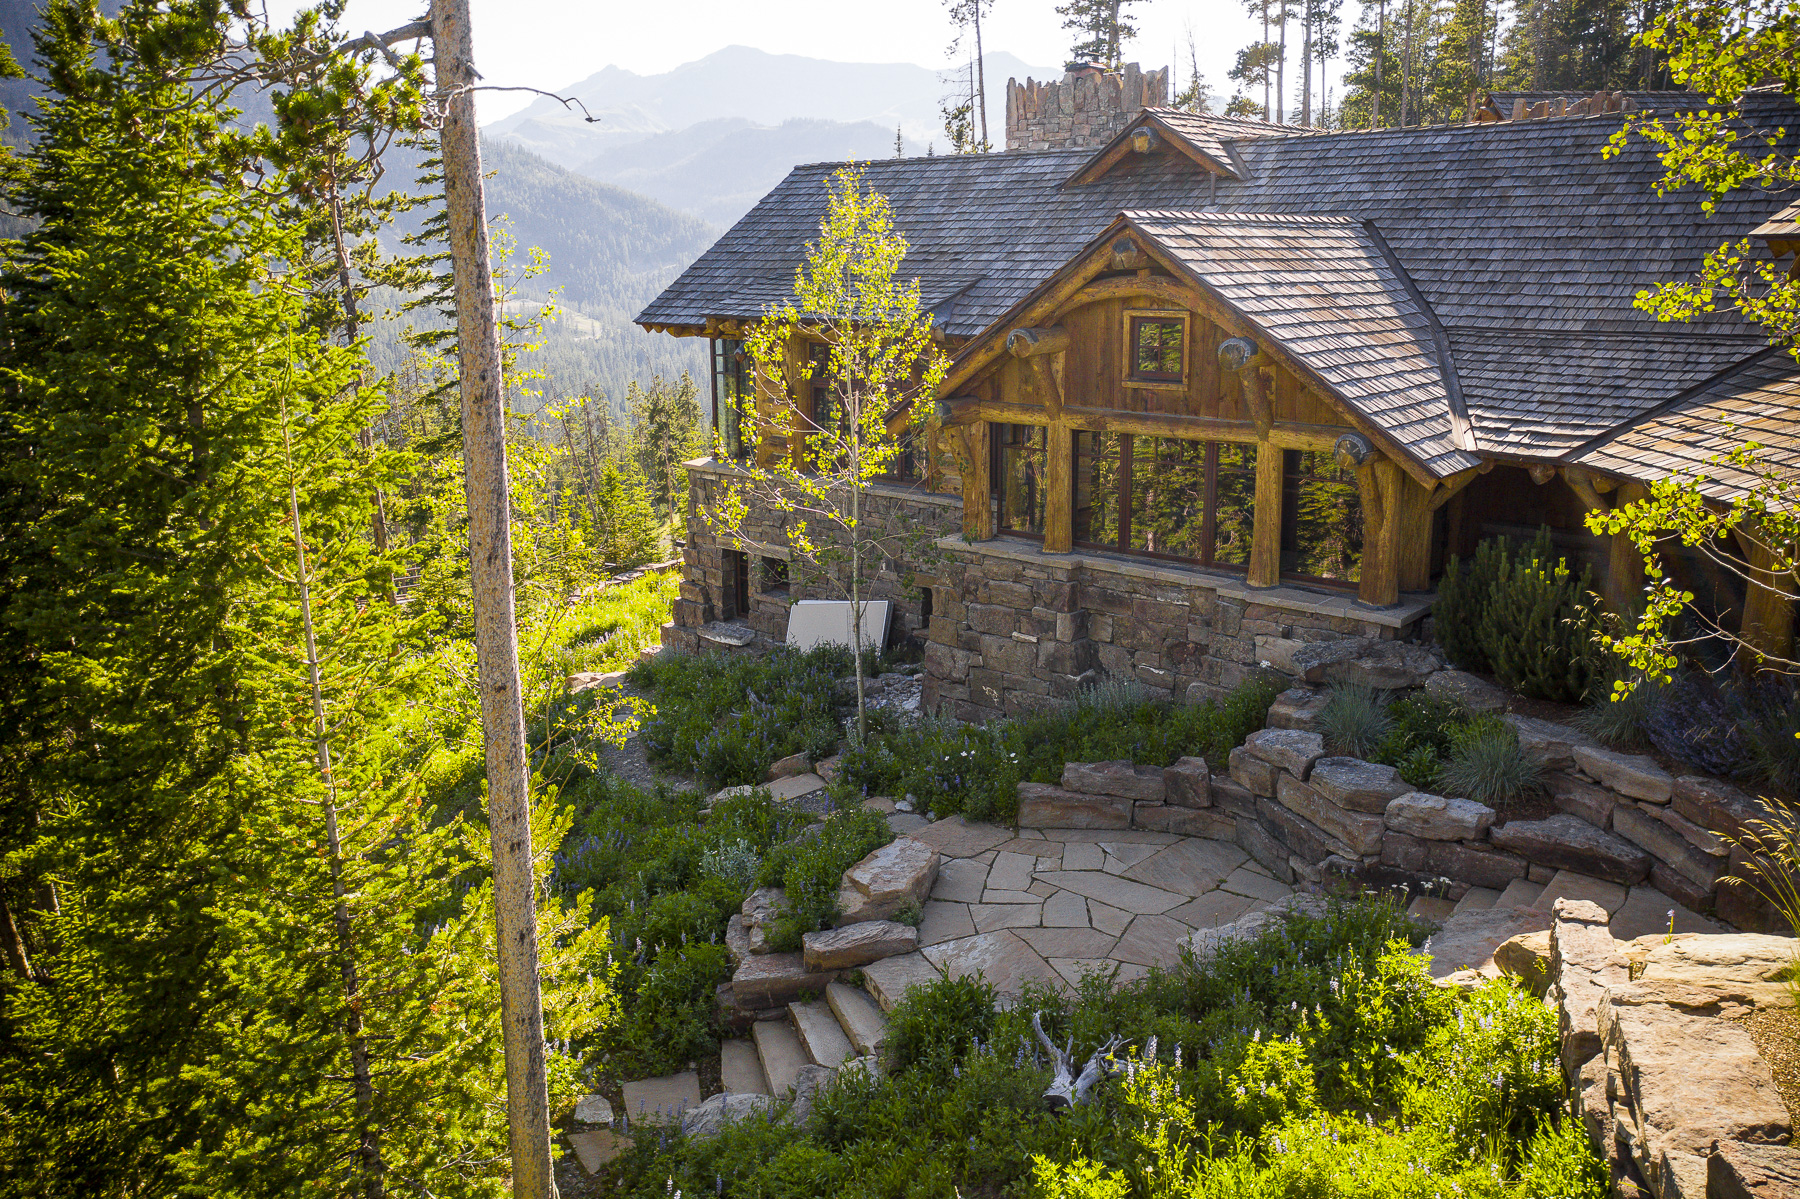 Sustainable landscaping using the natural environment to design